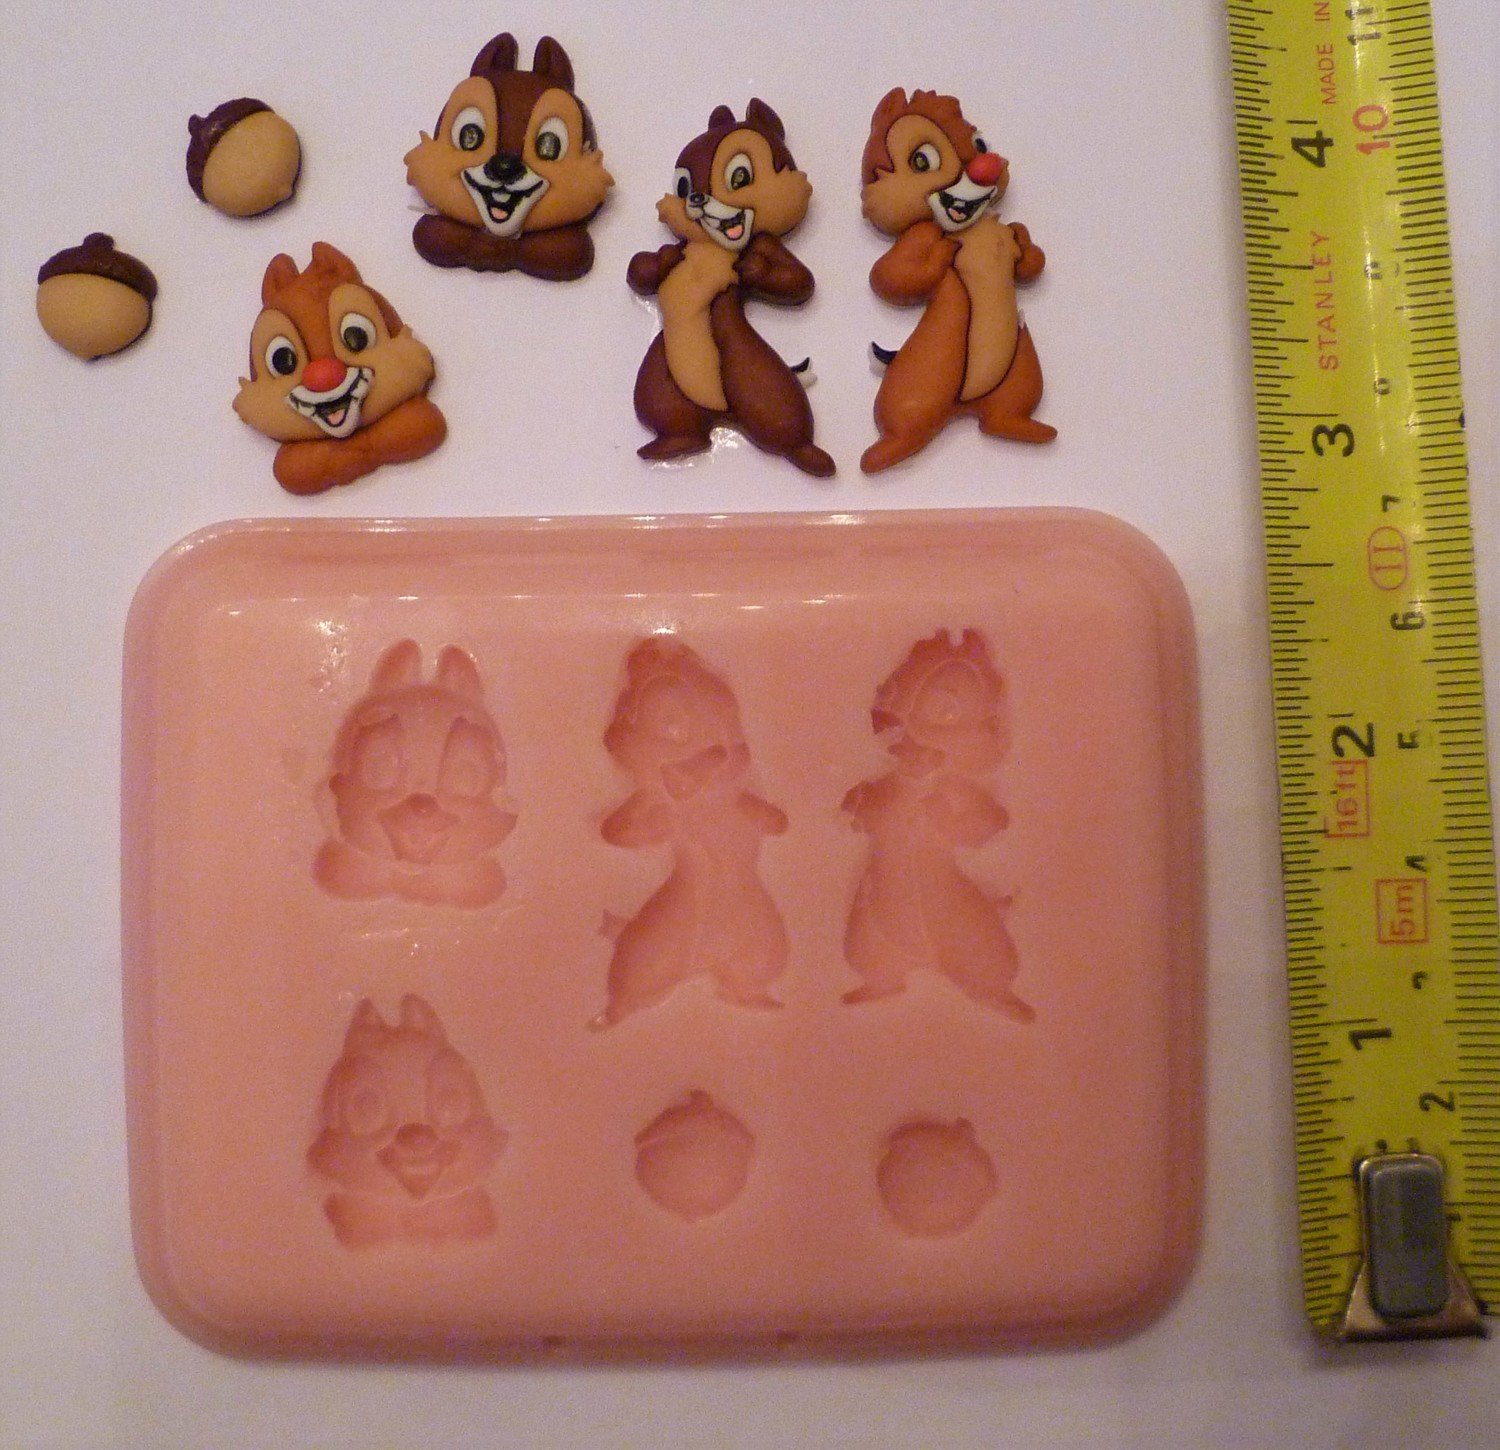 CHIPMUNKS 001 SILICONE MOULD